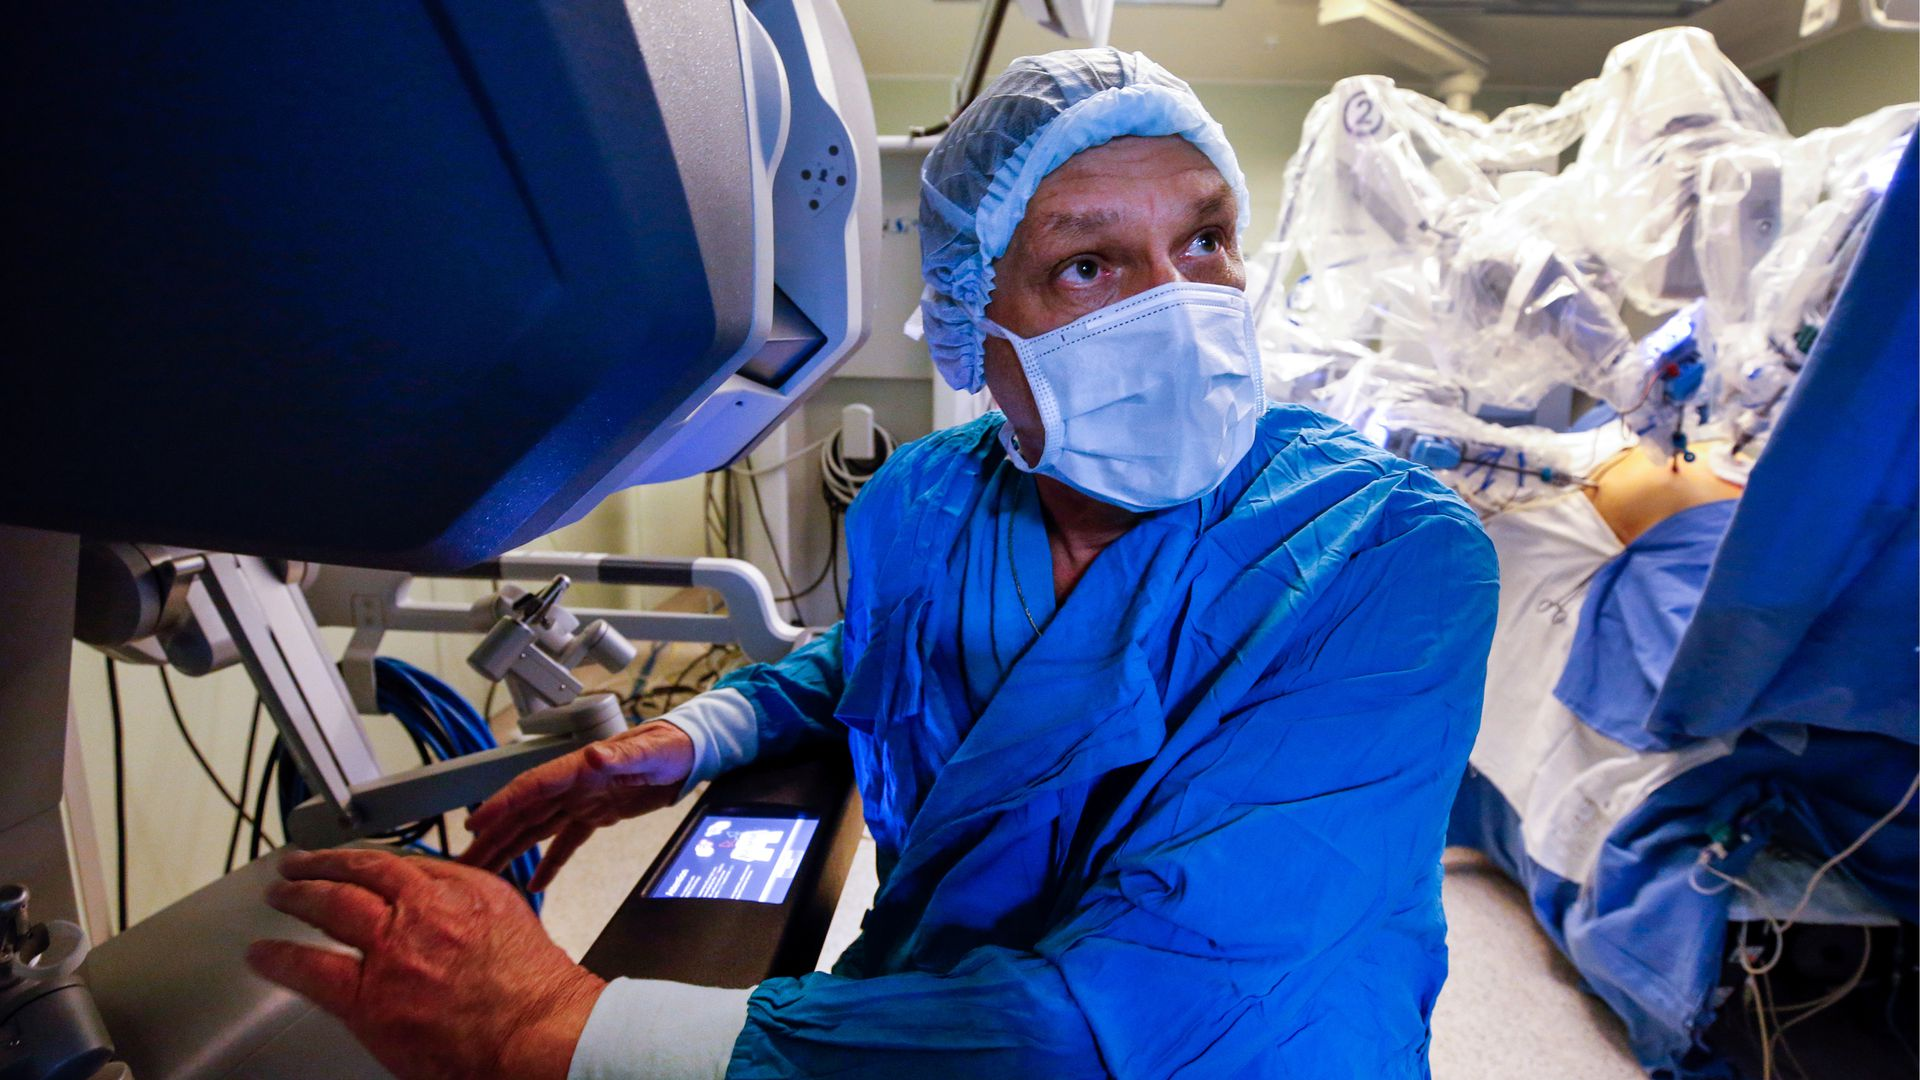 In this image, a surgeon in blue scrubs and wearing a white face mask looks to the right while using a machine during an operation.